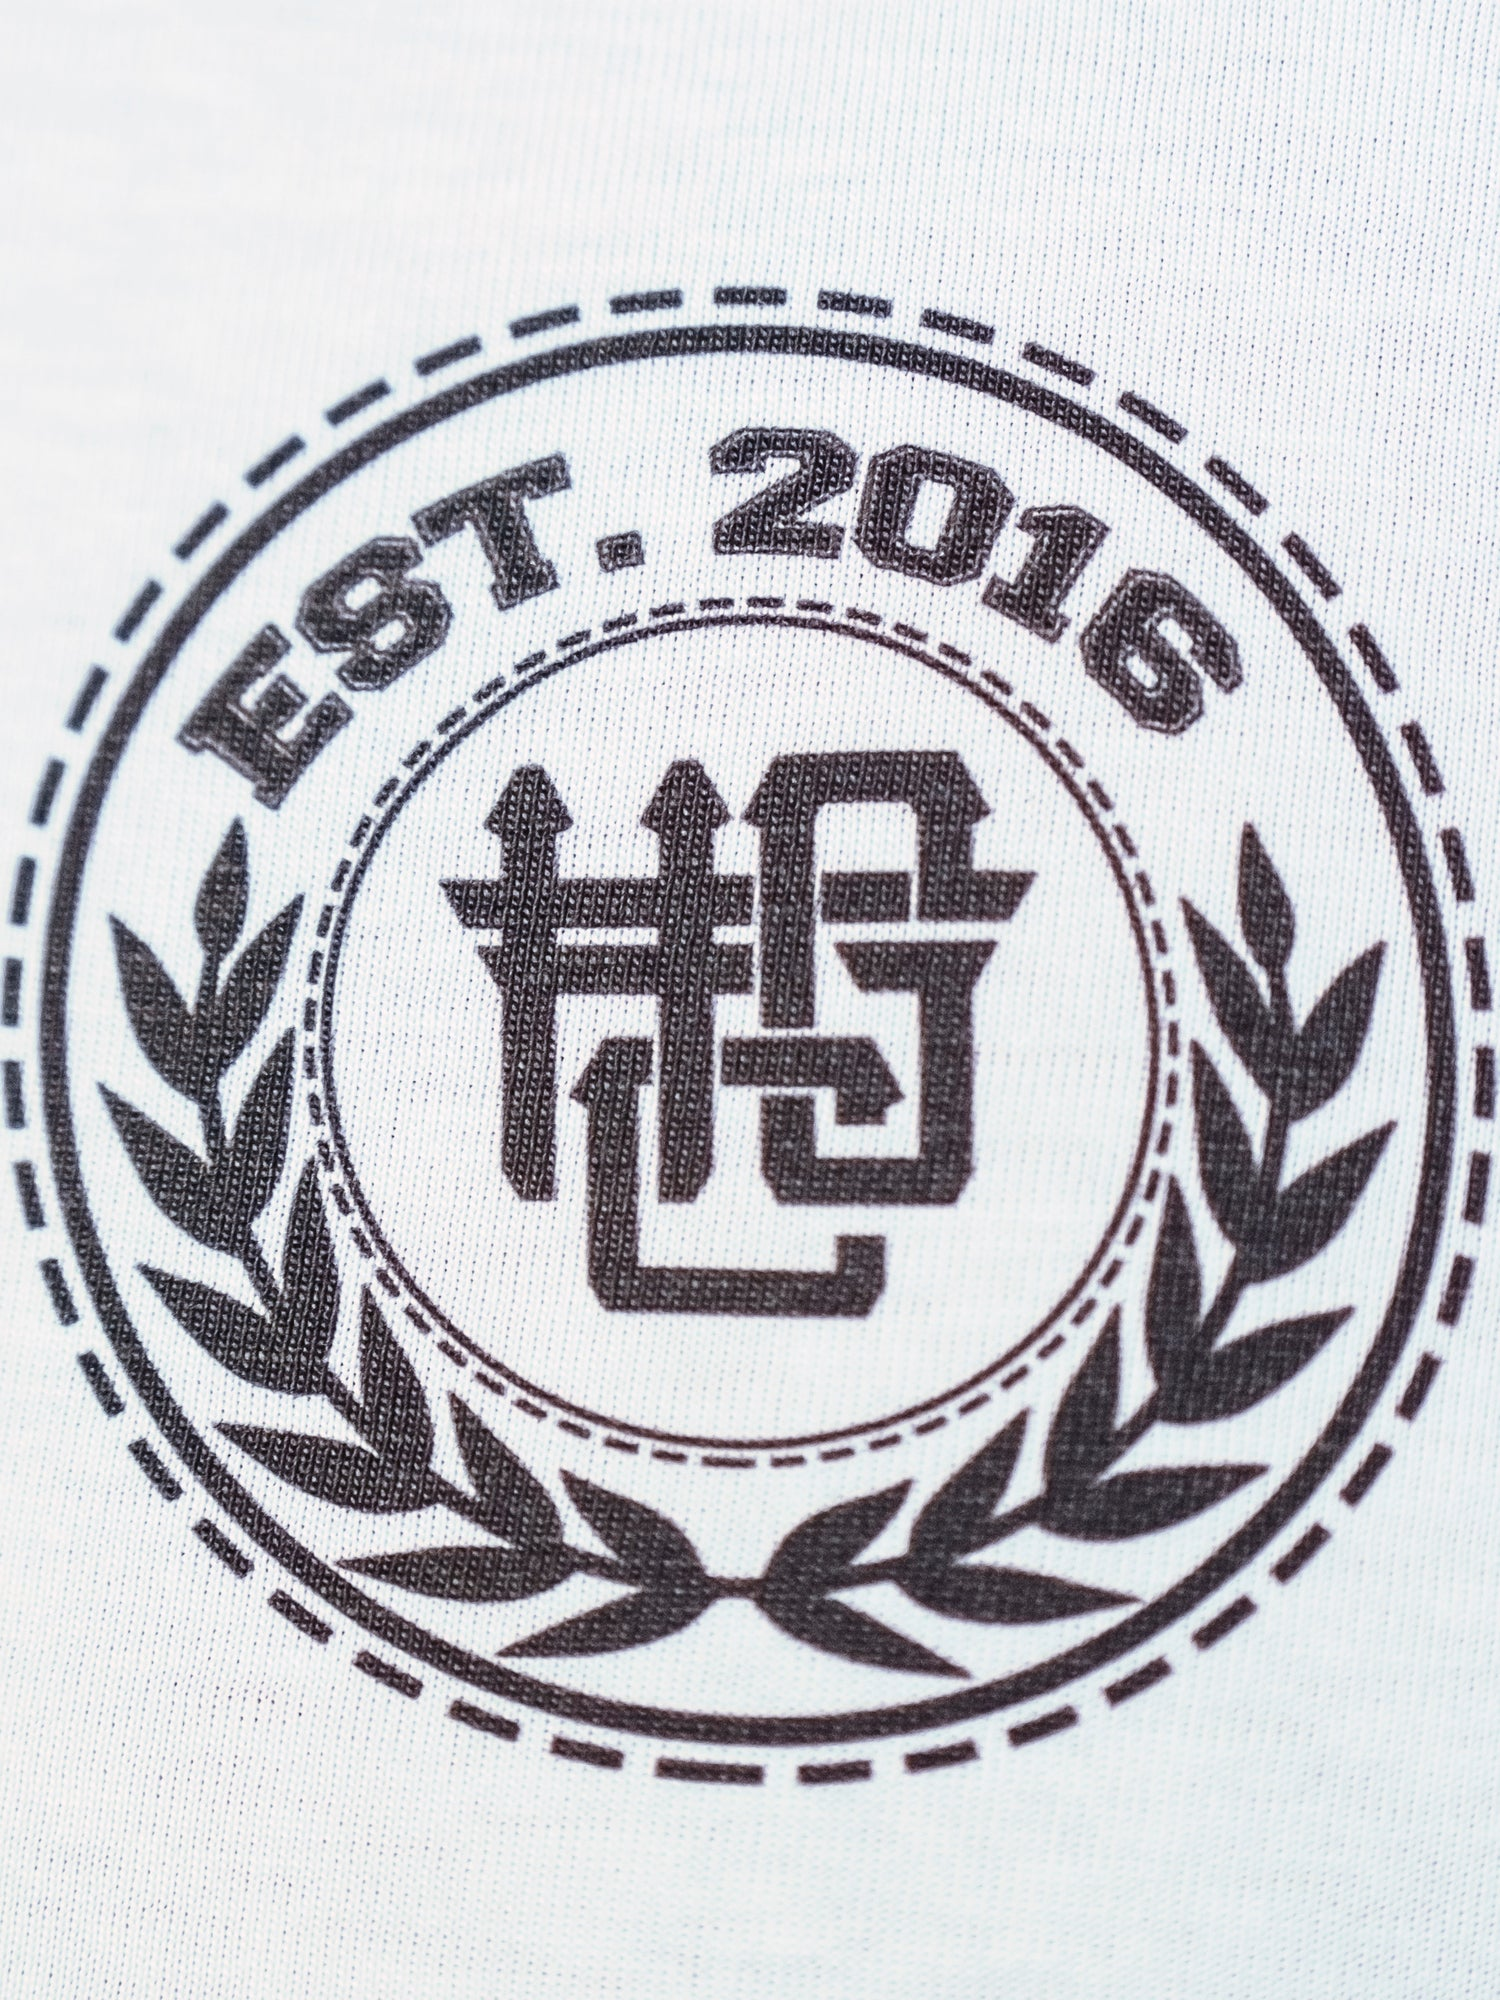 HGC Est. 2016 Tee - Black on White